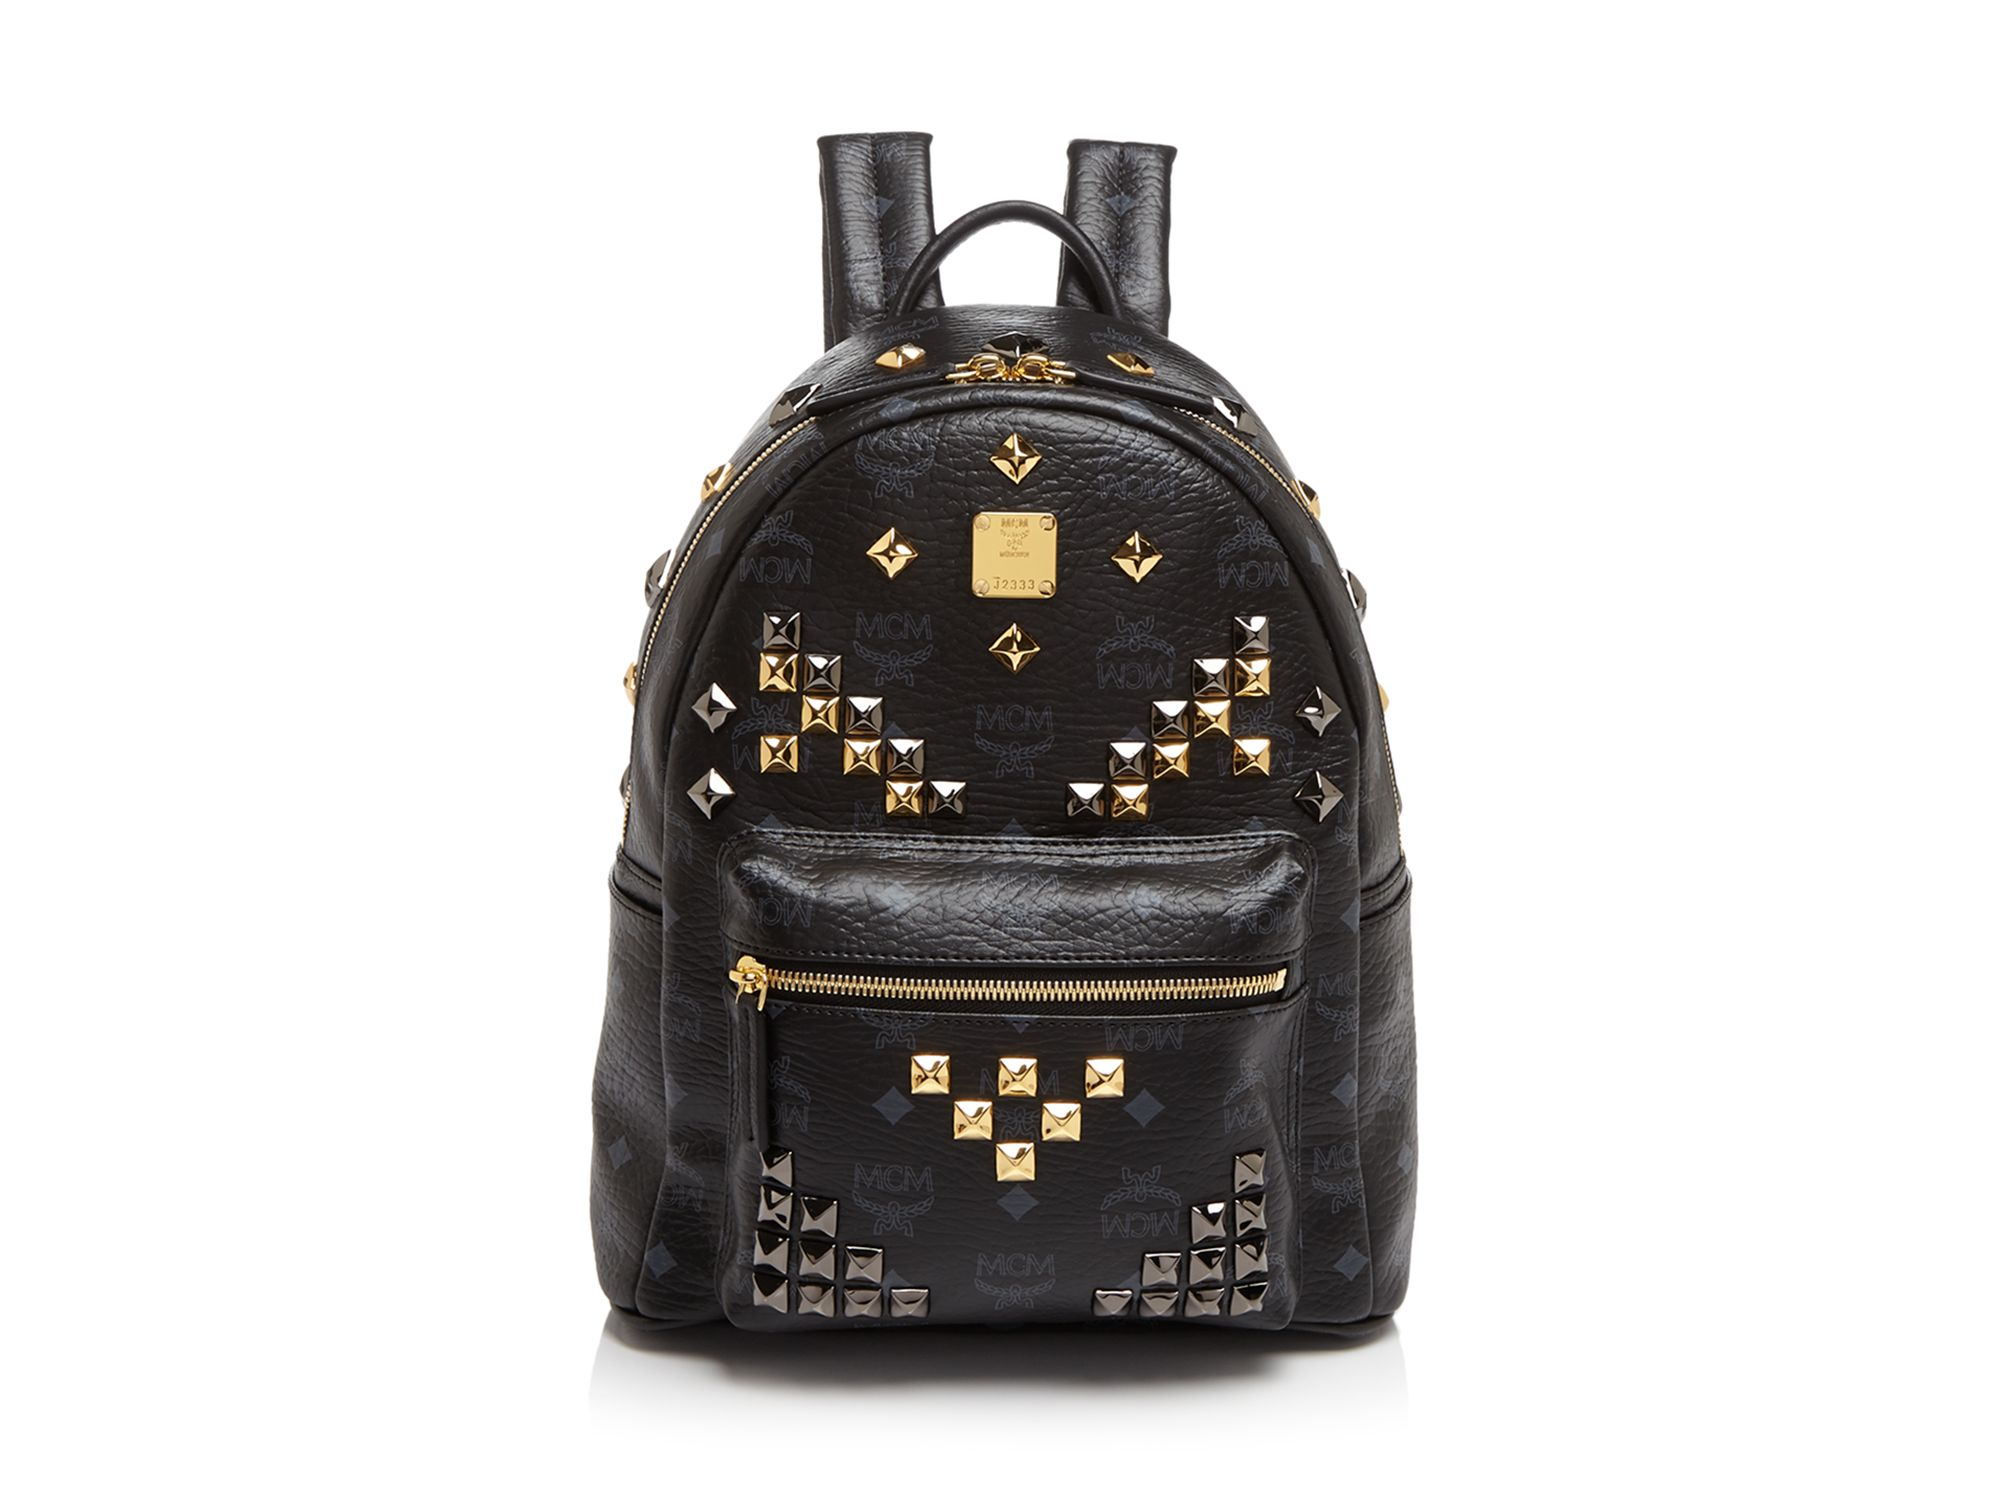 6ad0da0d3cf6f The results of the research mcm backpack black and gold